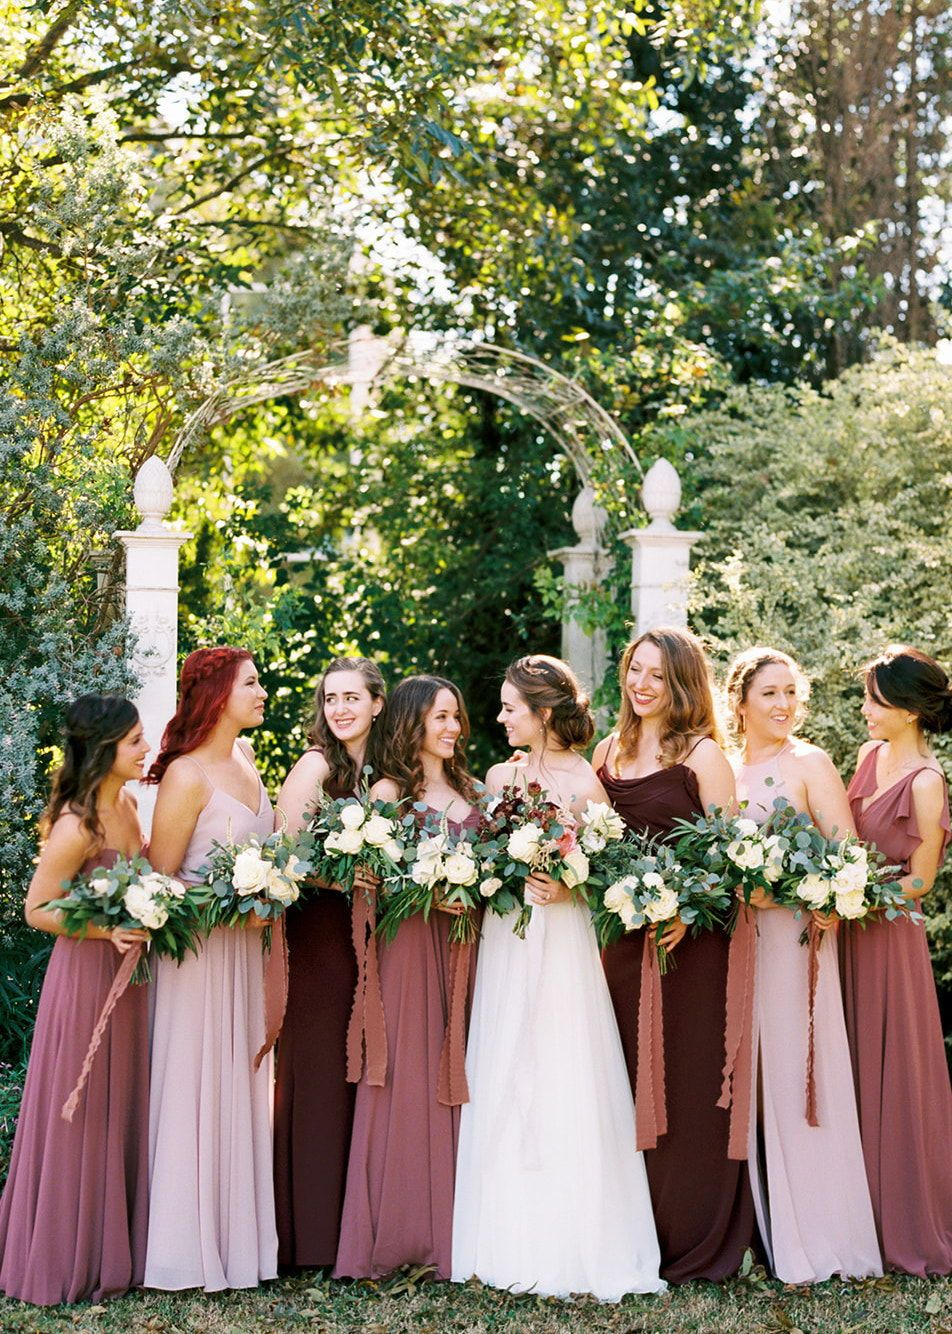 Jenny Yoo Bridesmaids Various Mix N Match Long Luxe Chiffon Styles In A Shades Of Blush Burgundy Bridesmaid Dresses Wedding Bridesmaids Bridesmaid Dresses